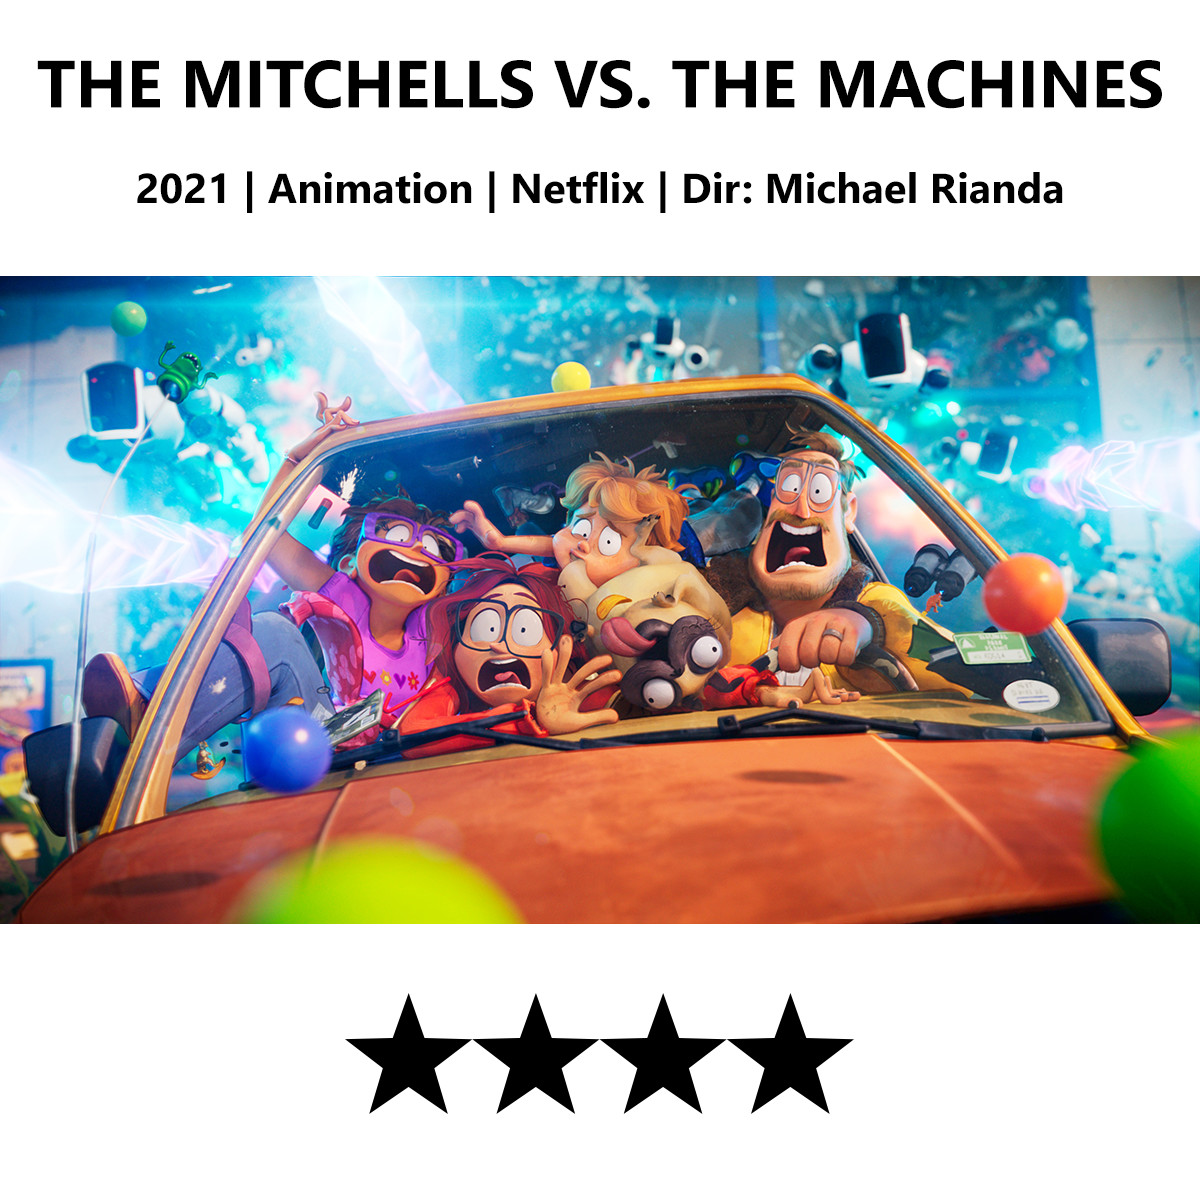 The Mitchells vs the Machines Poster